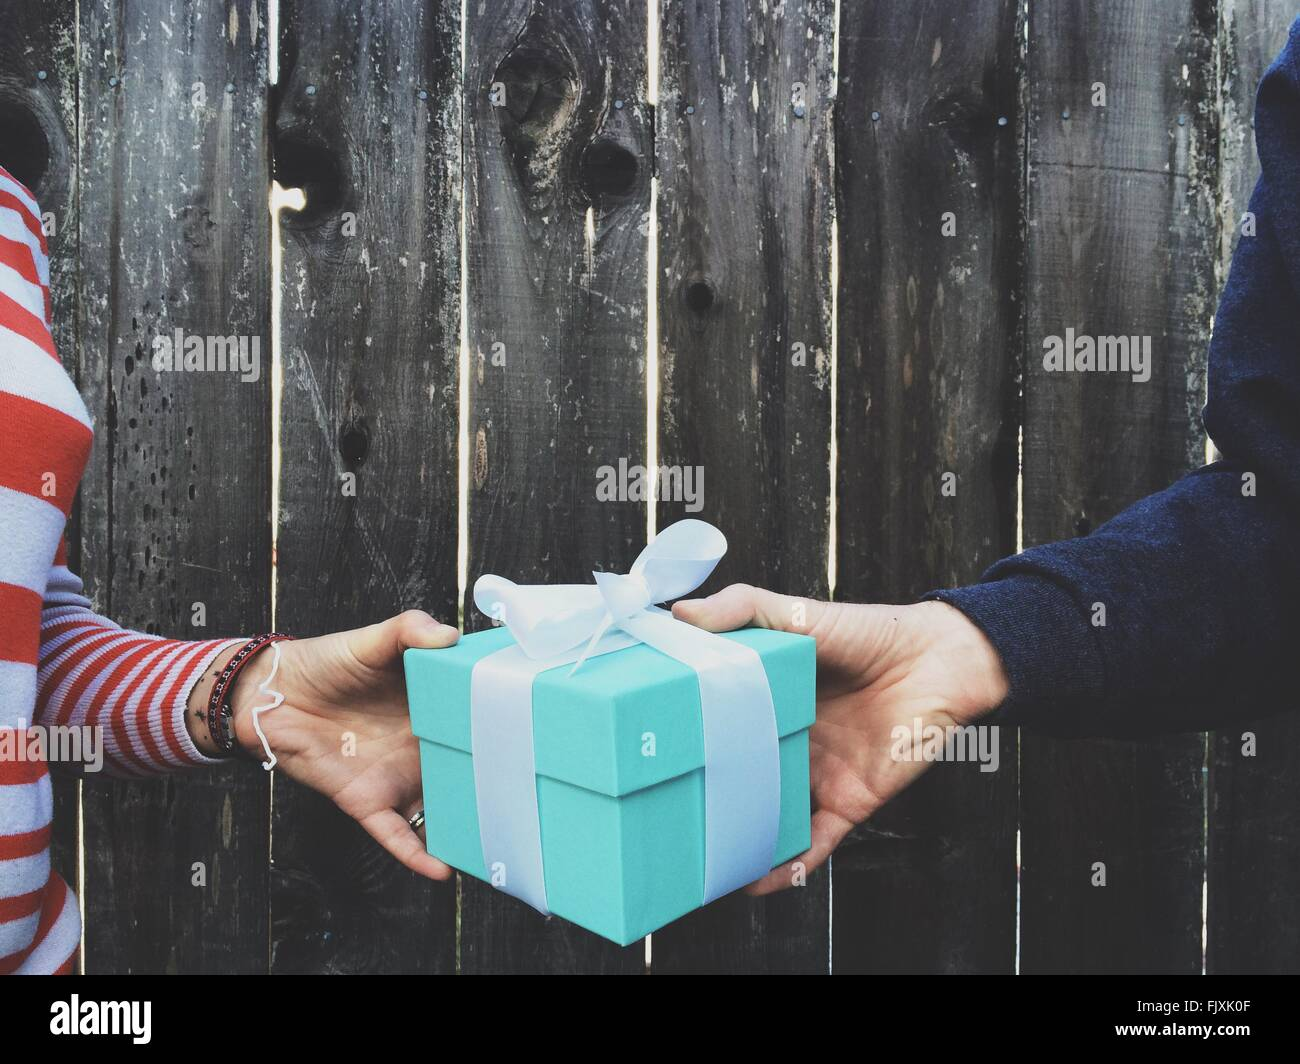 Cropped Image Of Hands Holding Gift Box Against Wooden Fence - Stock Image